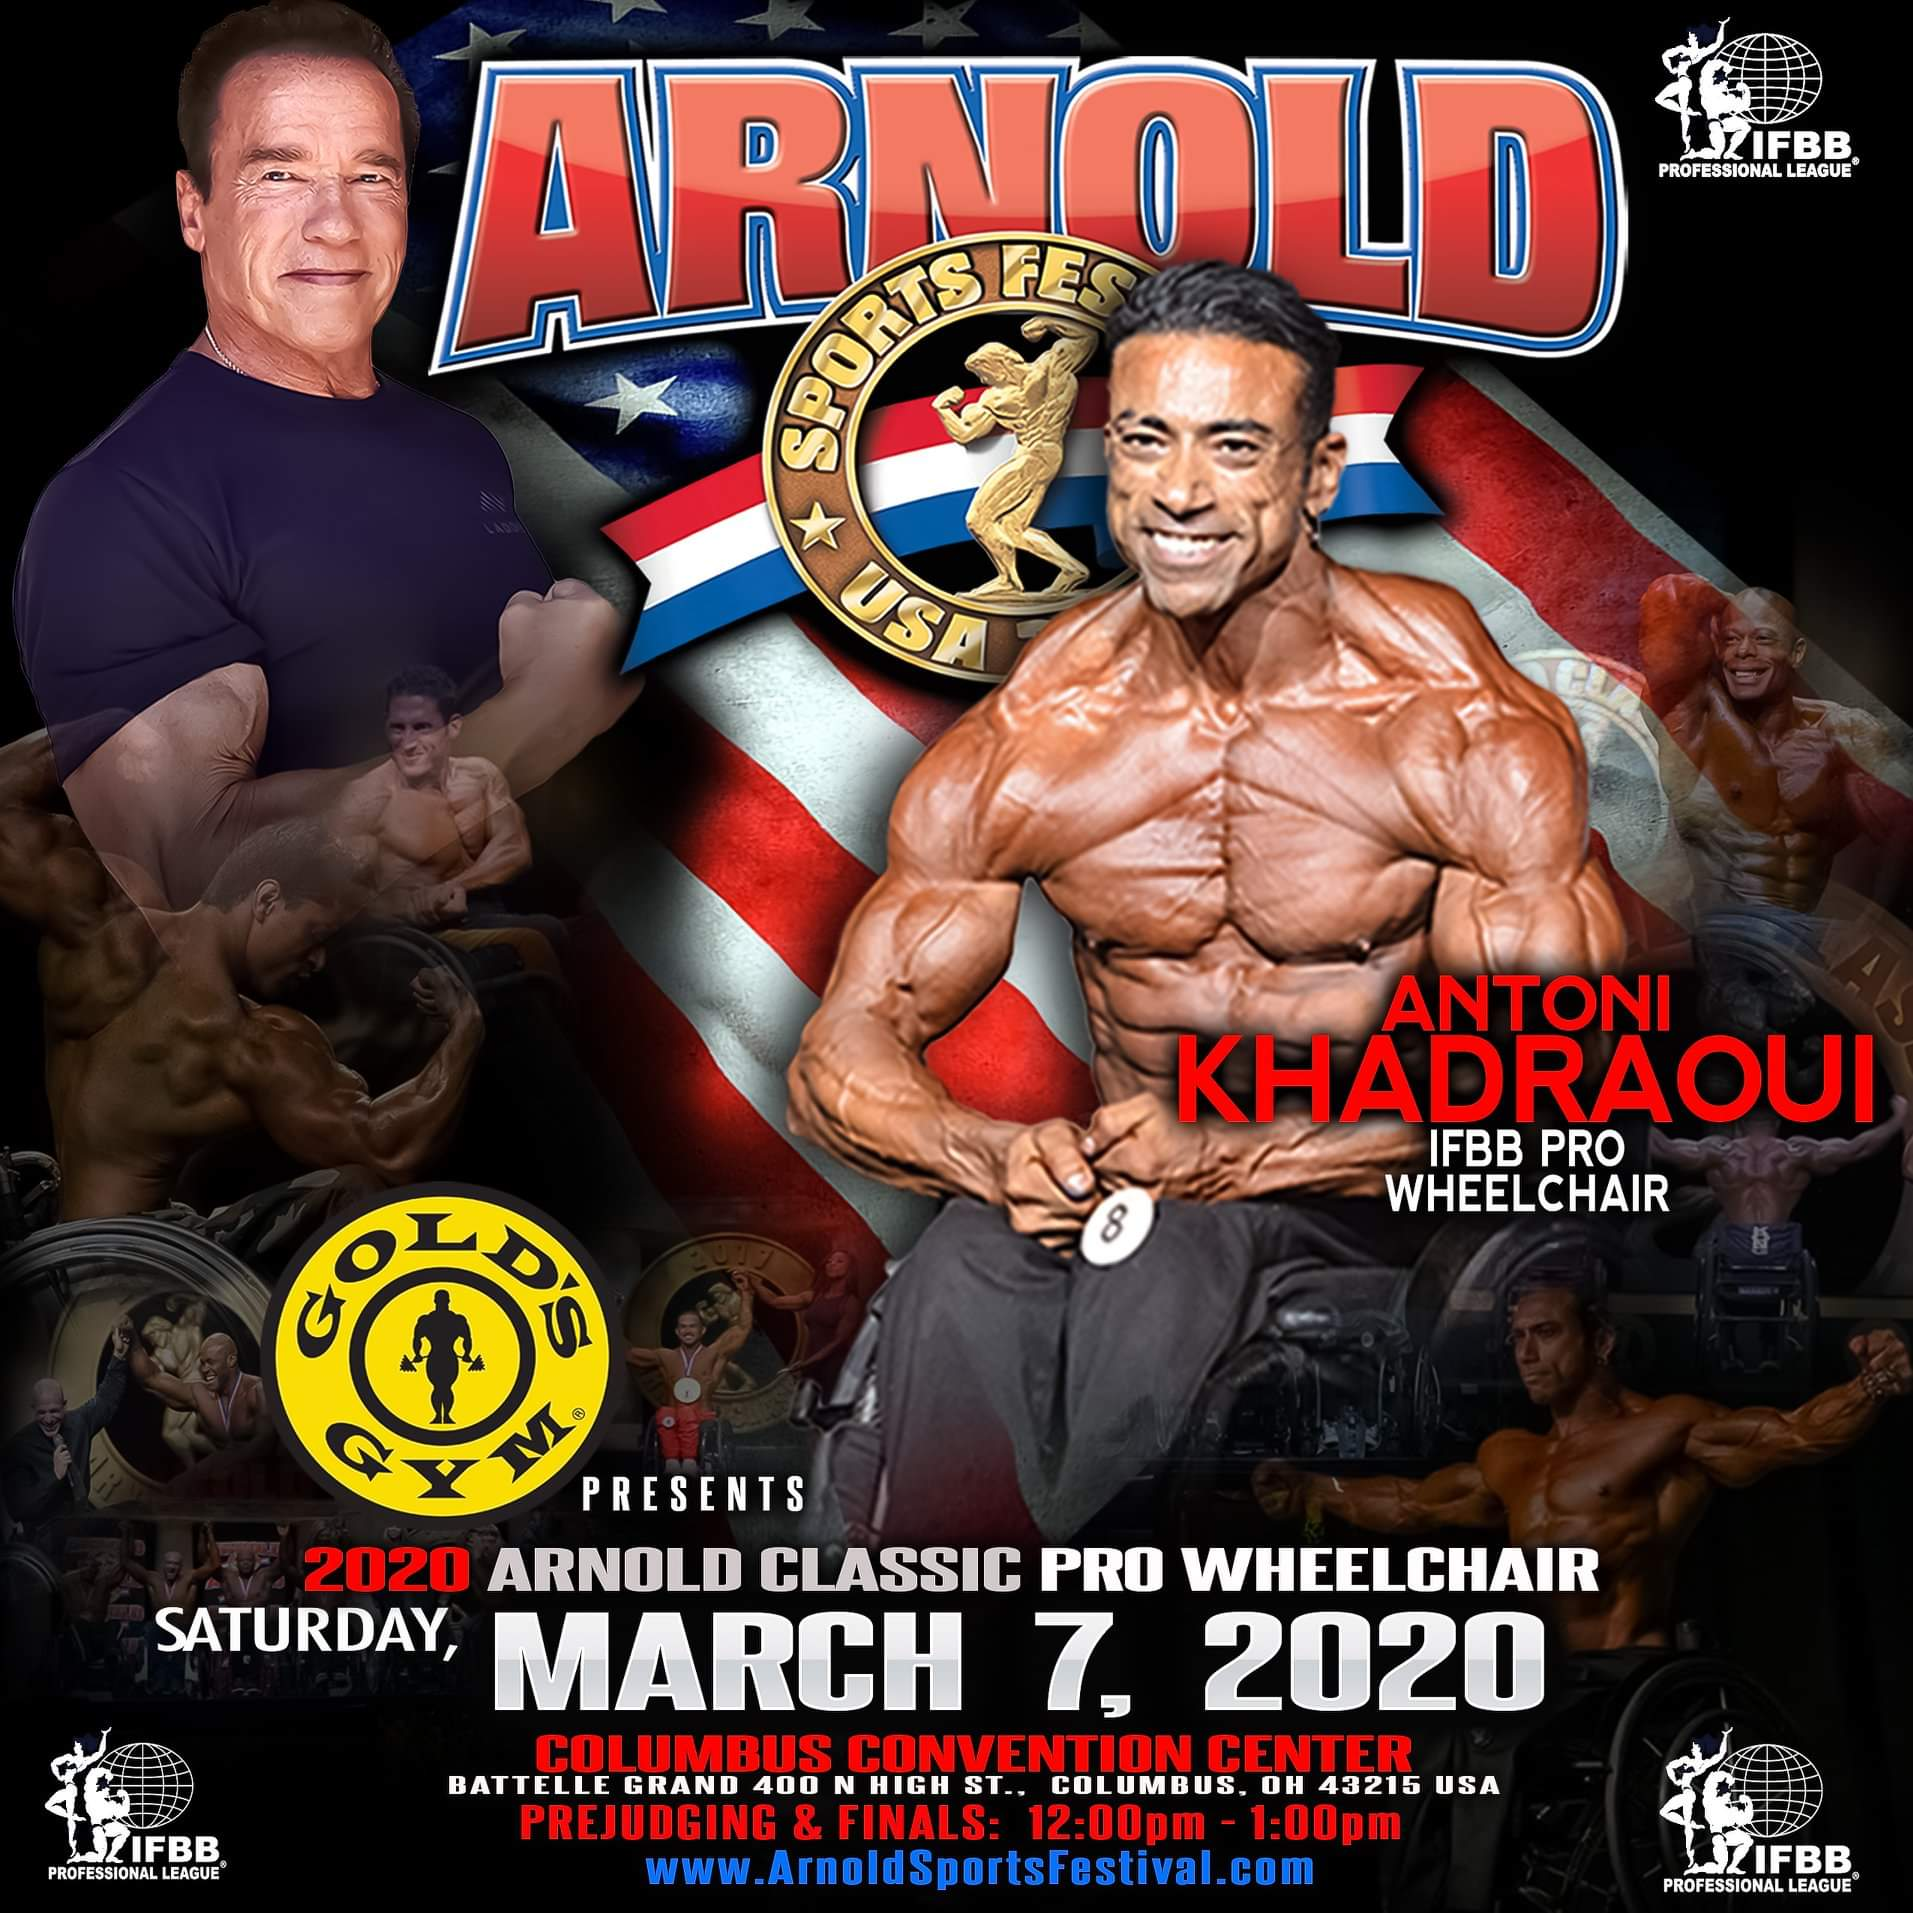 2020 arnold classic pro wheelchair